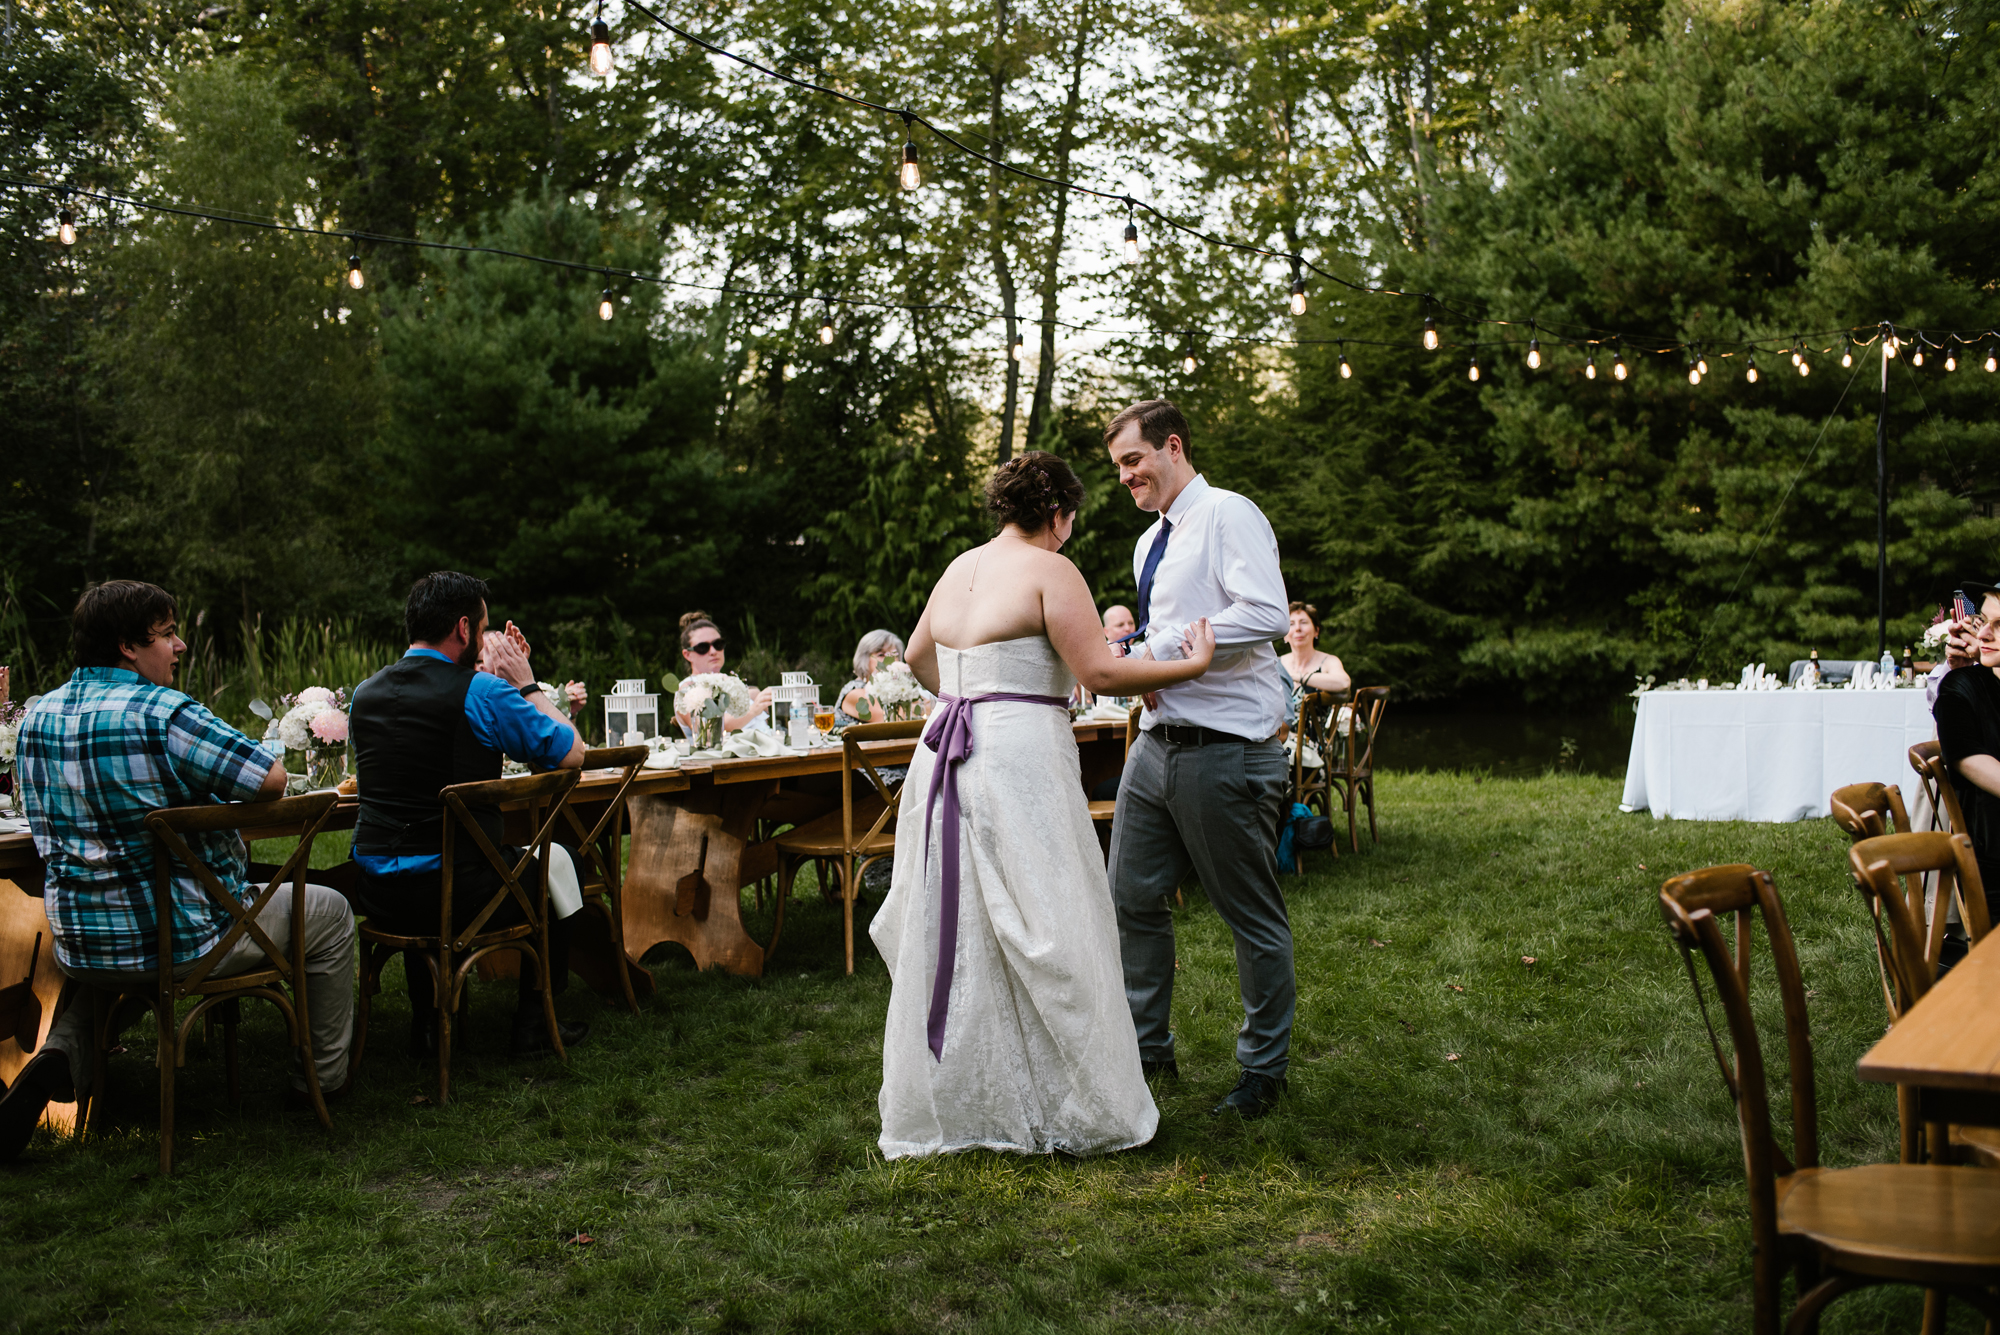 sawyer-michigan-backyard-wedding-dancing-pictures-sydney-marie (1).jpg